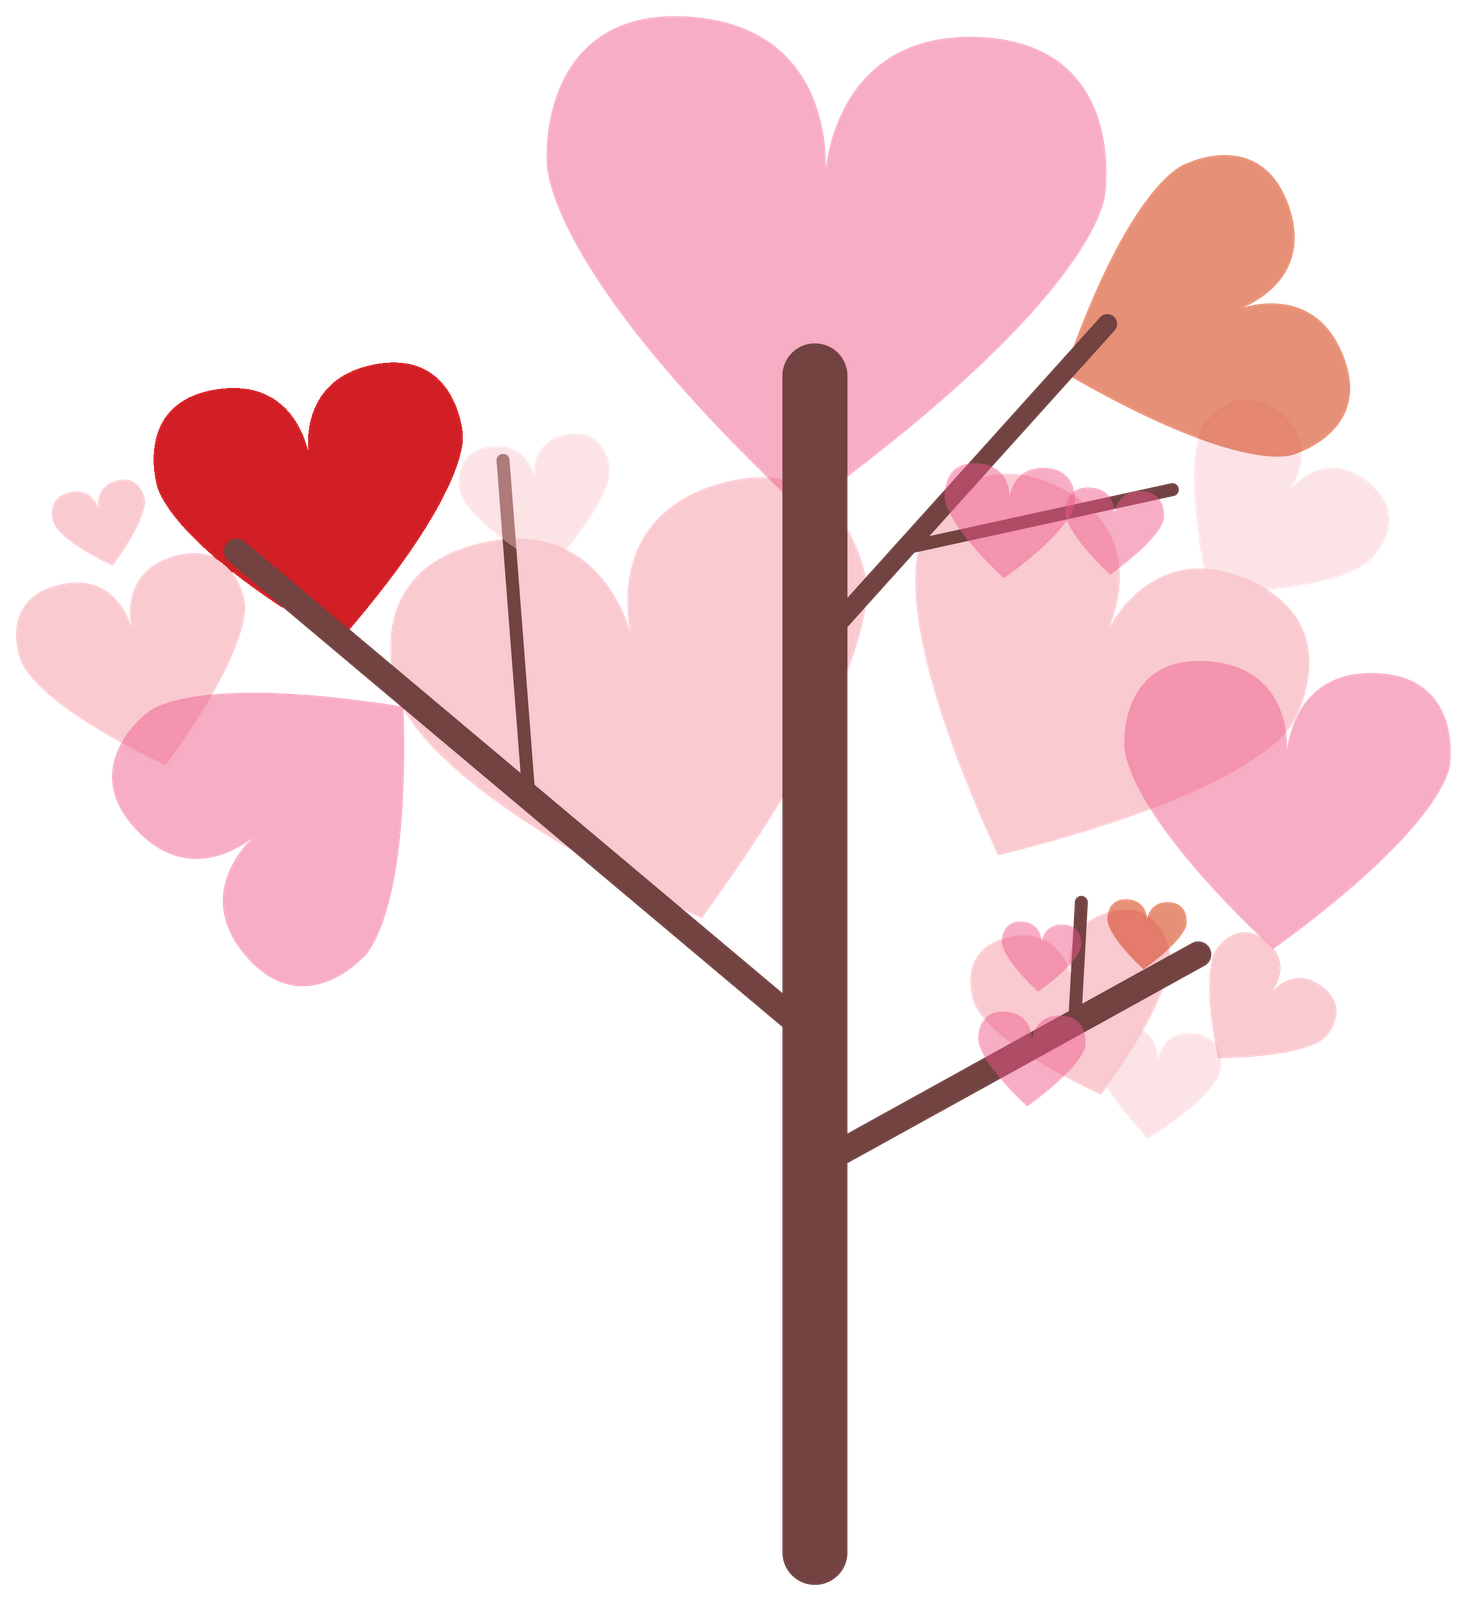 Kind clipart loved. Free clip art love